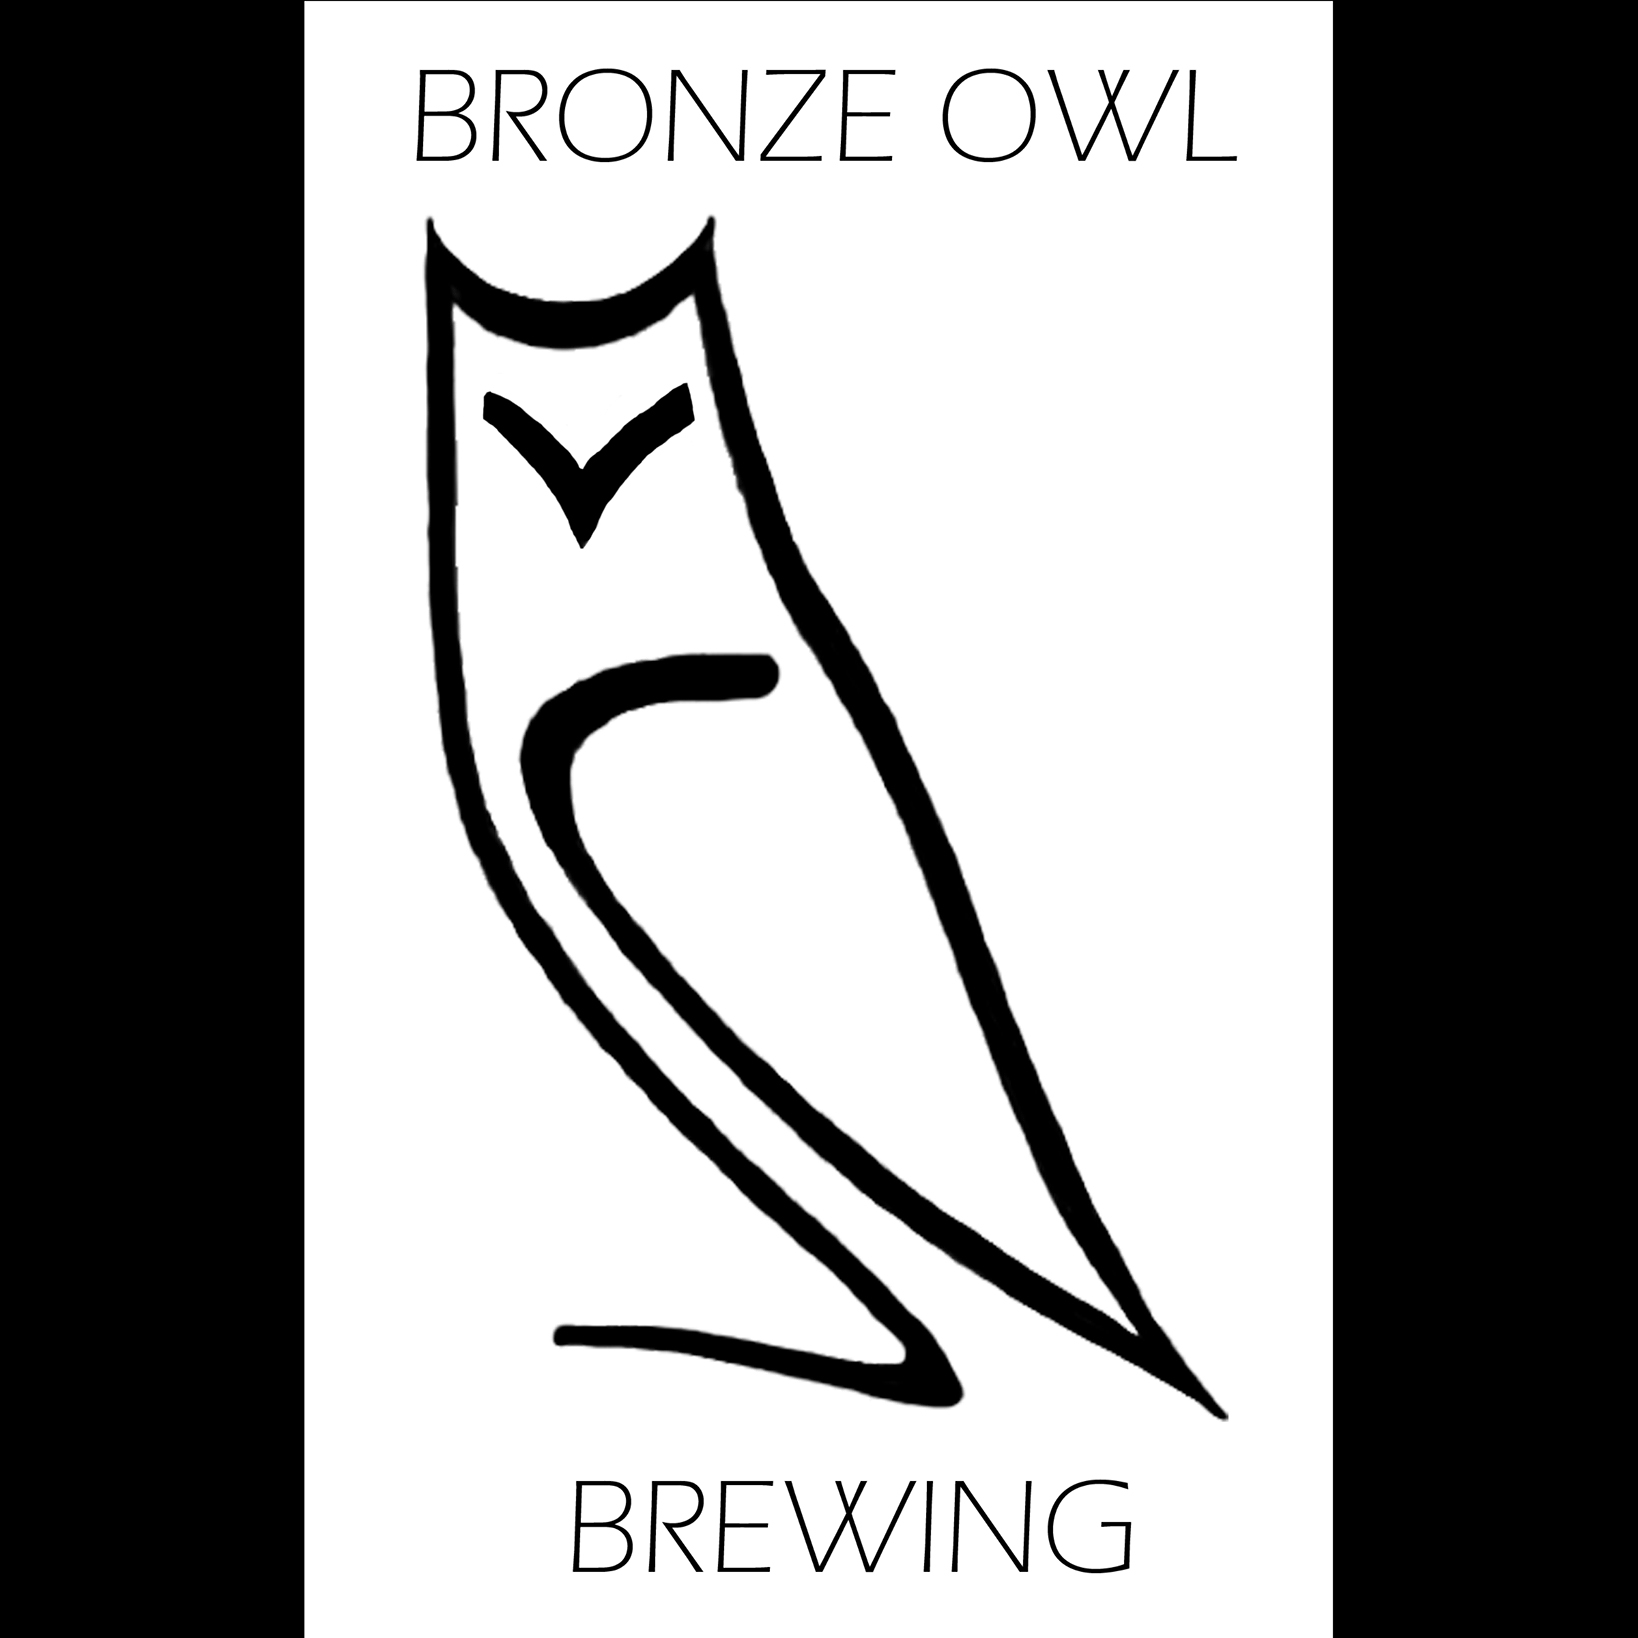 Bronze Owl Brewing